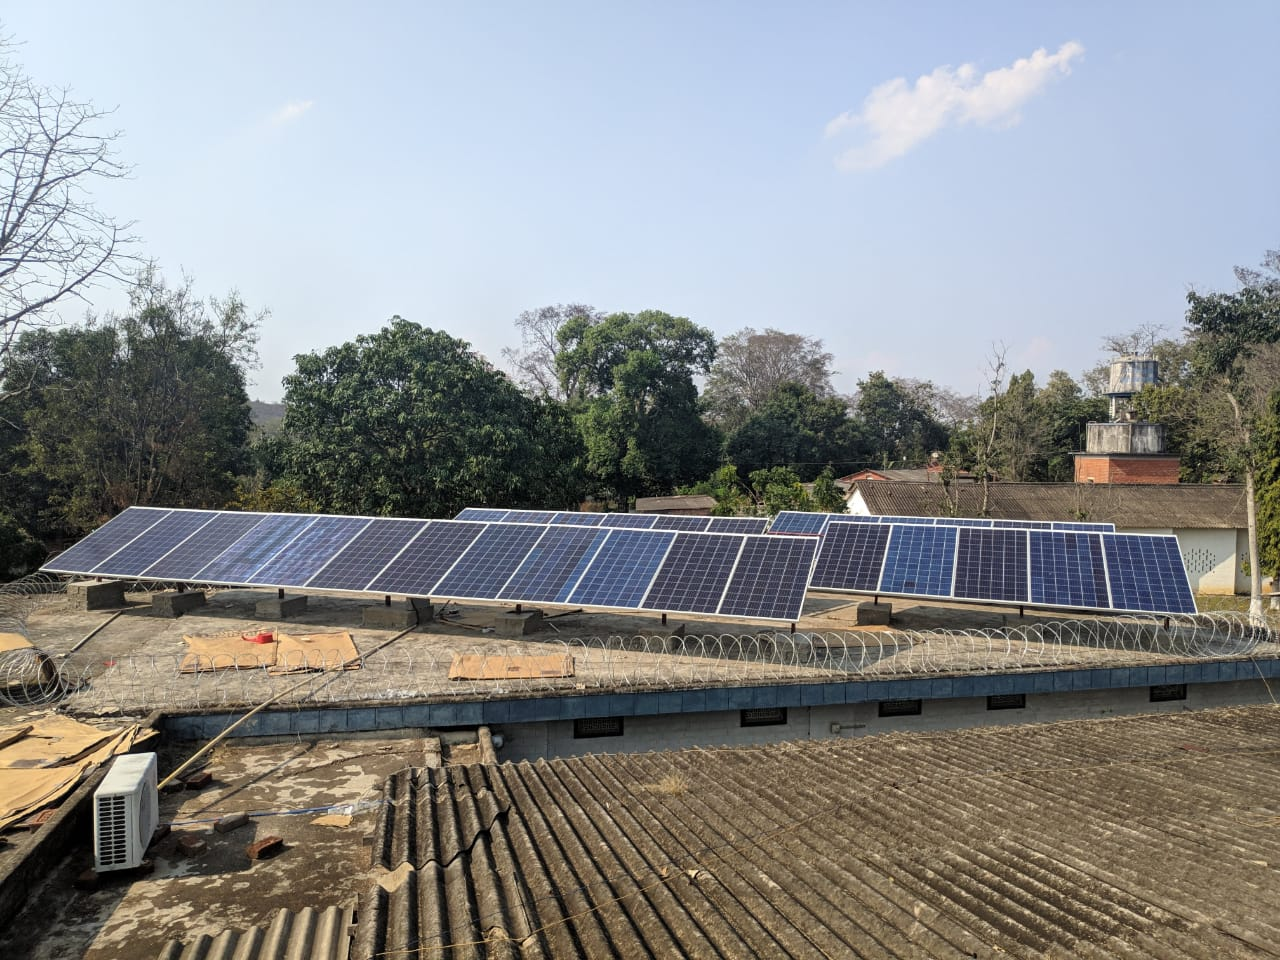 <p>Solar power has allowed Nav Jivan Hospital to build resilience and have reliable electricity to treat COVID-19 patients. Photo by Nav Jivan Hospital</p>